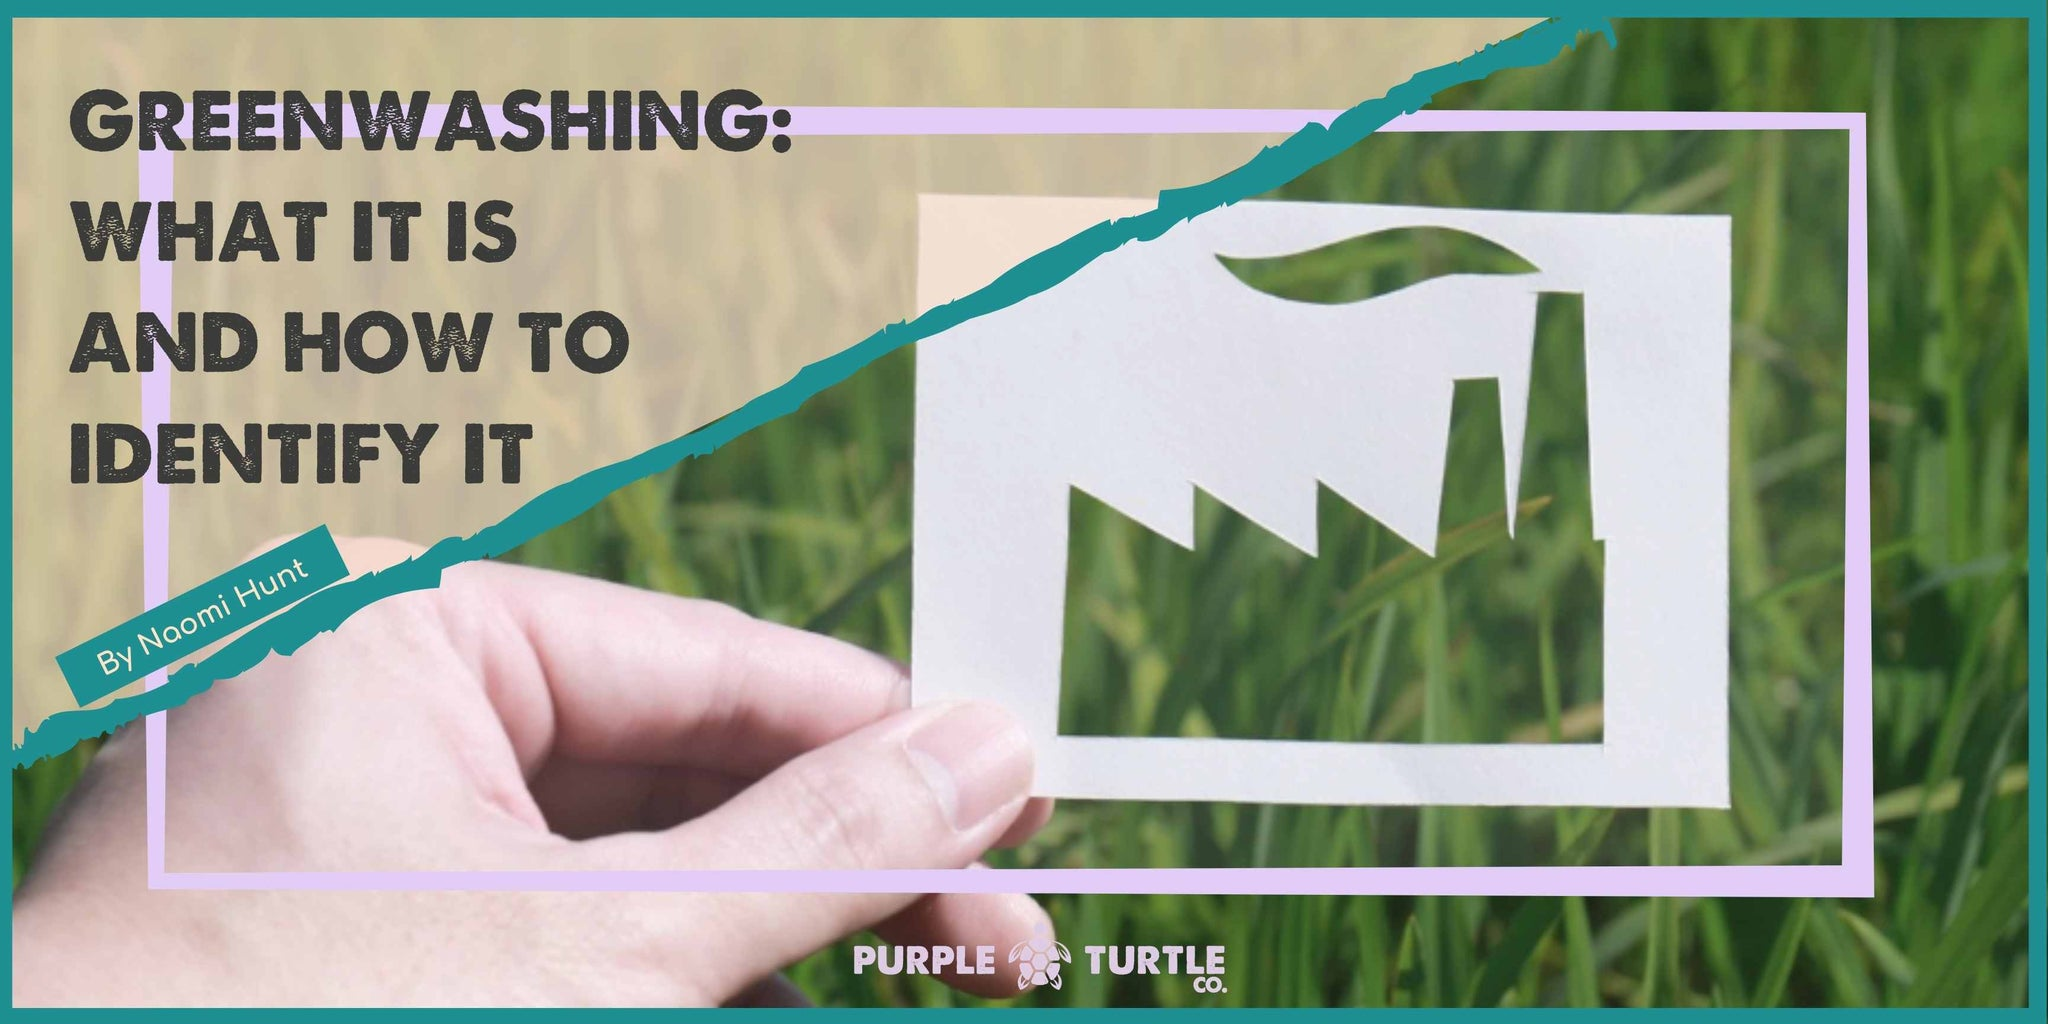 Greenwashing - what it is and how to identify it